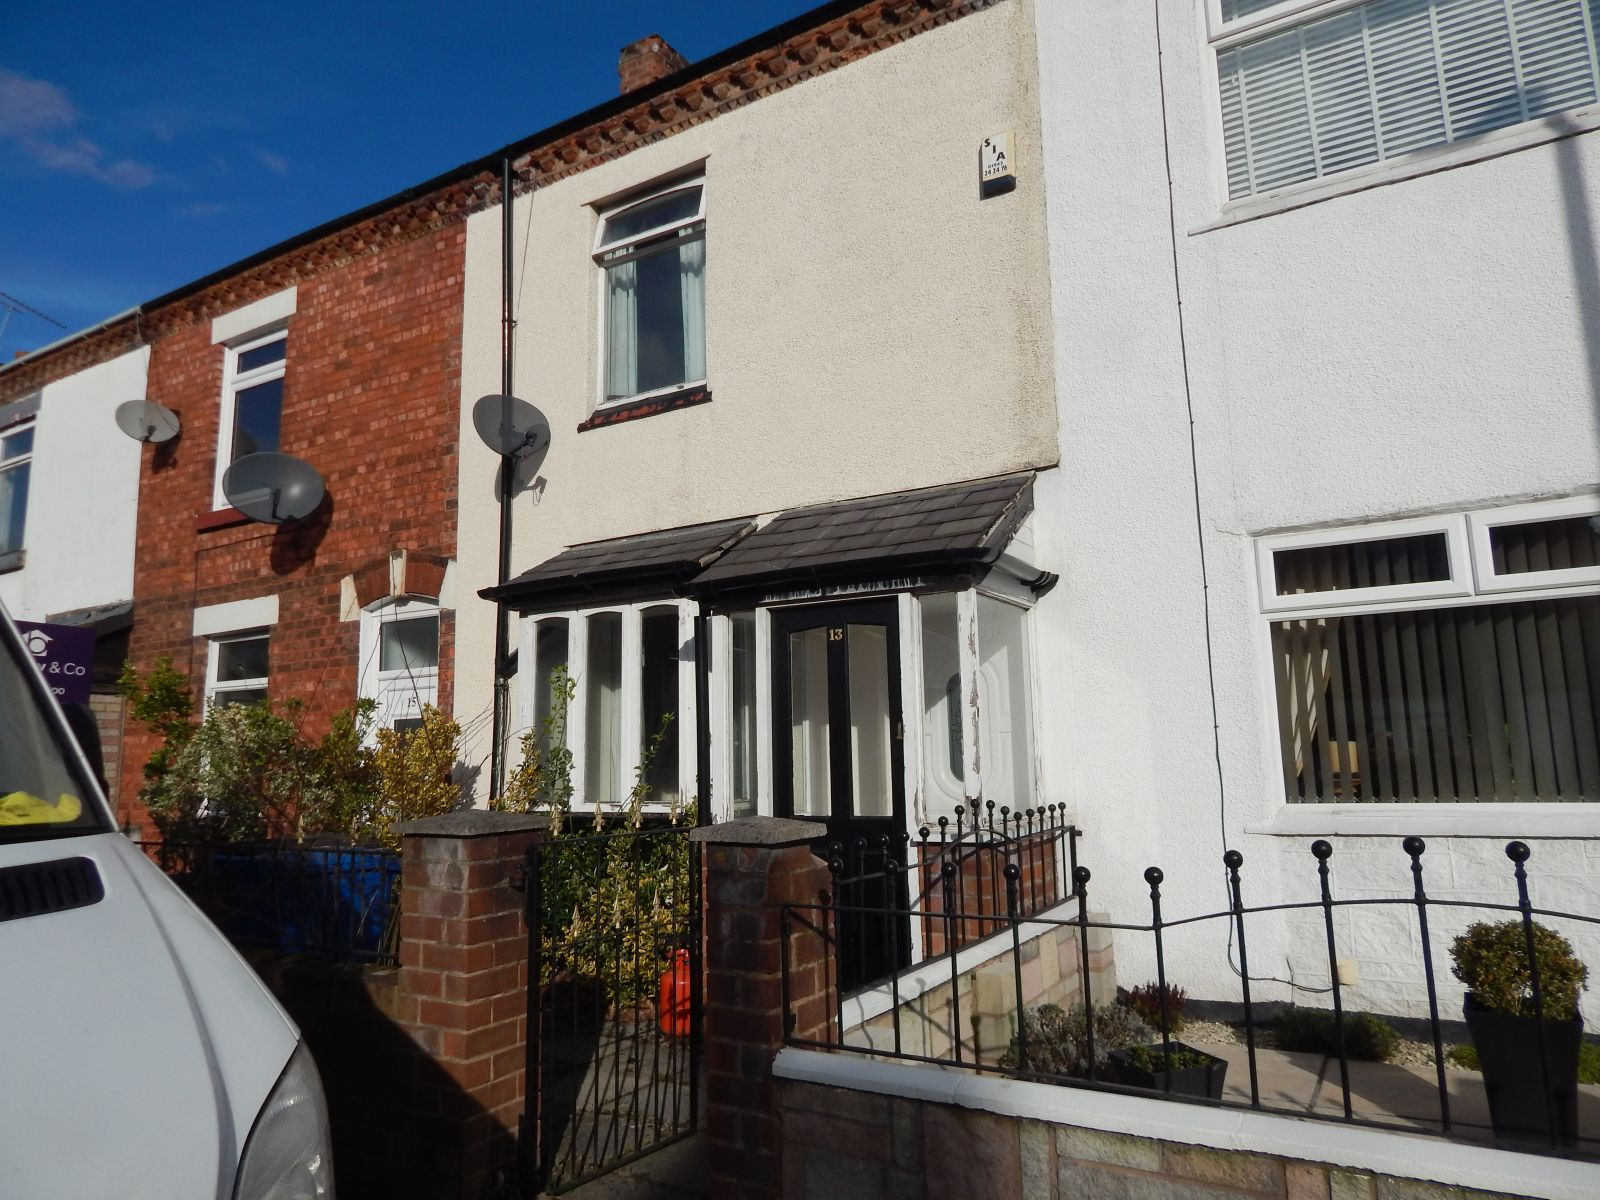 Property photo 1 of 5. Vine Street, Wigan, Wn1 3Pg